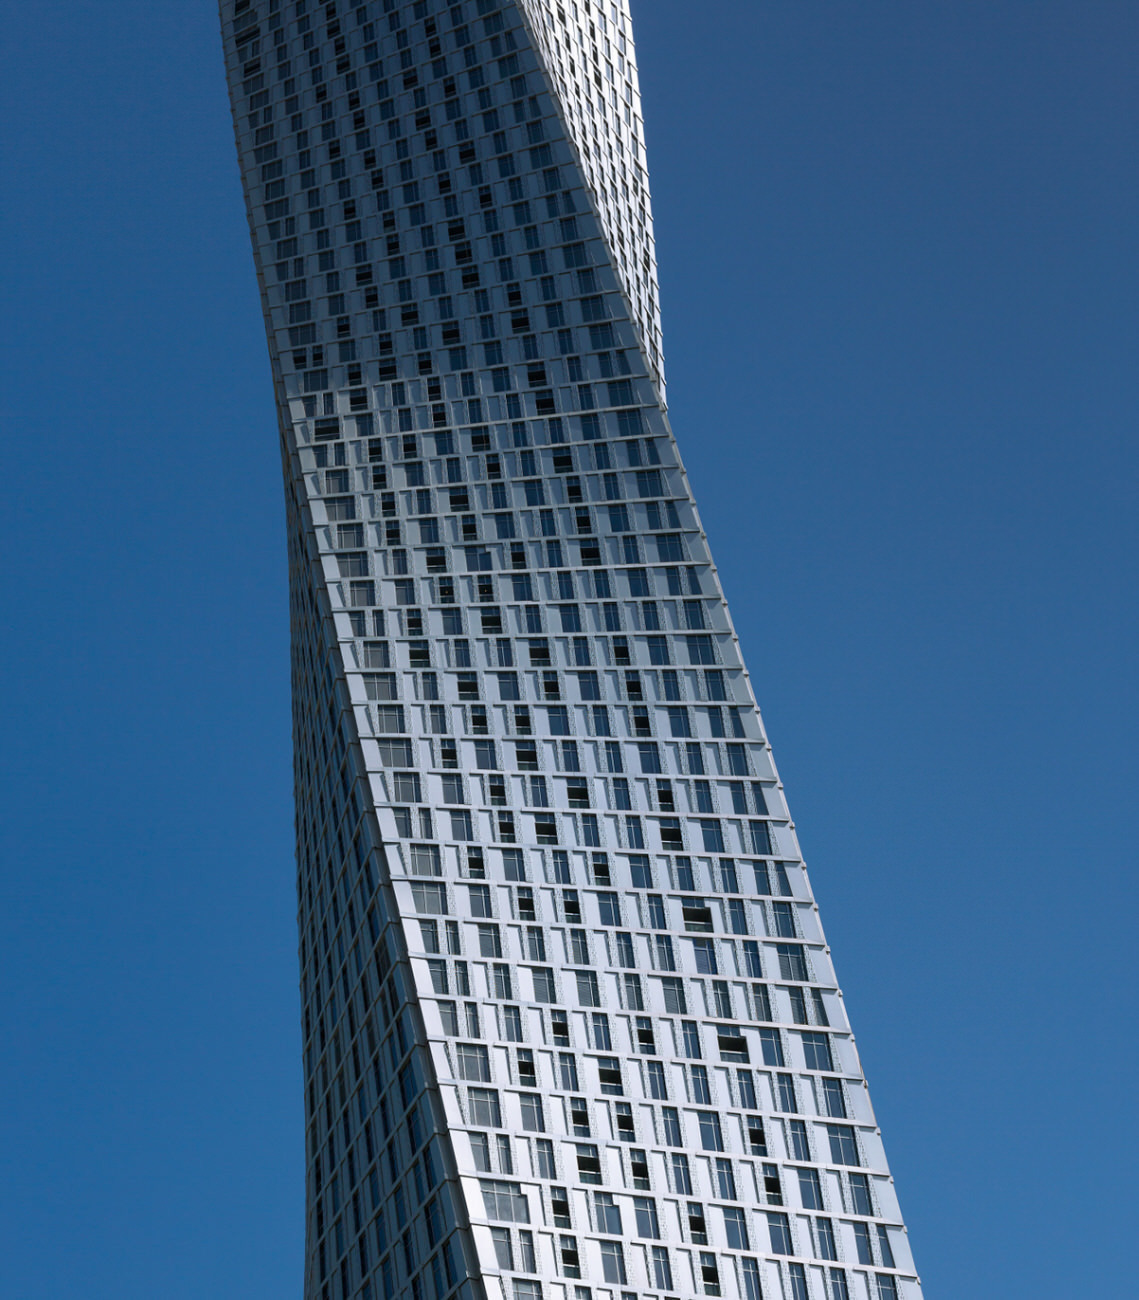 Cayan Tower is the world's tallest true twisting building. While the skyscraper's 73-floor plates are all identical, each is slightly rotated against the story below it, resulting in a full 90-degree twist over the course of the tower's 307-meter rise.  Images © SOM